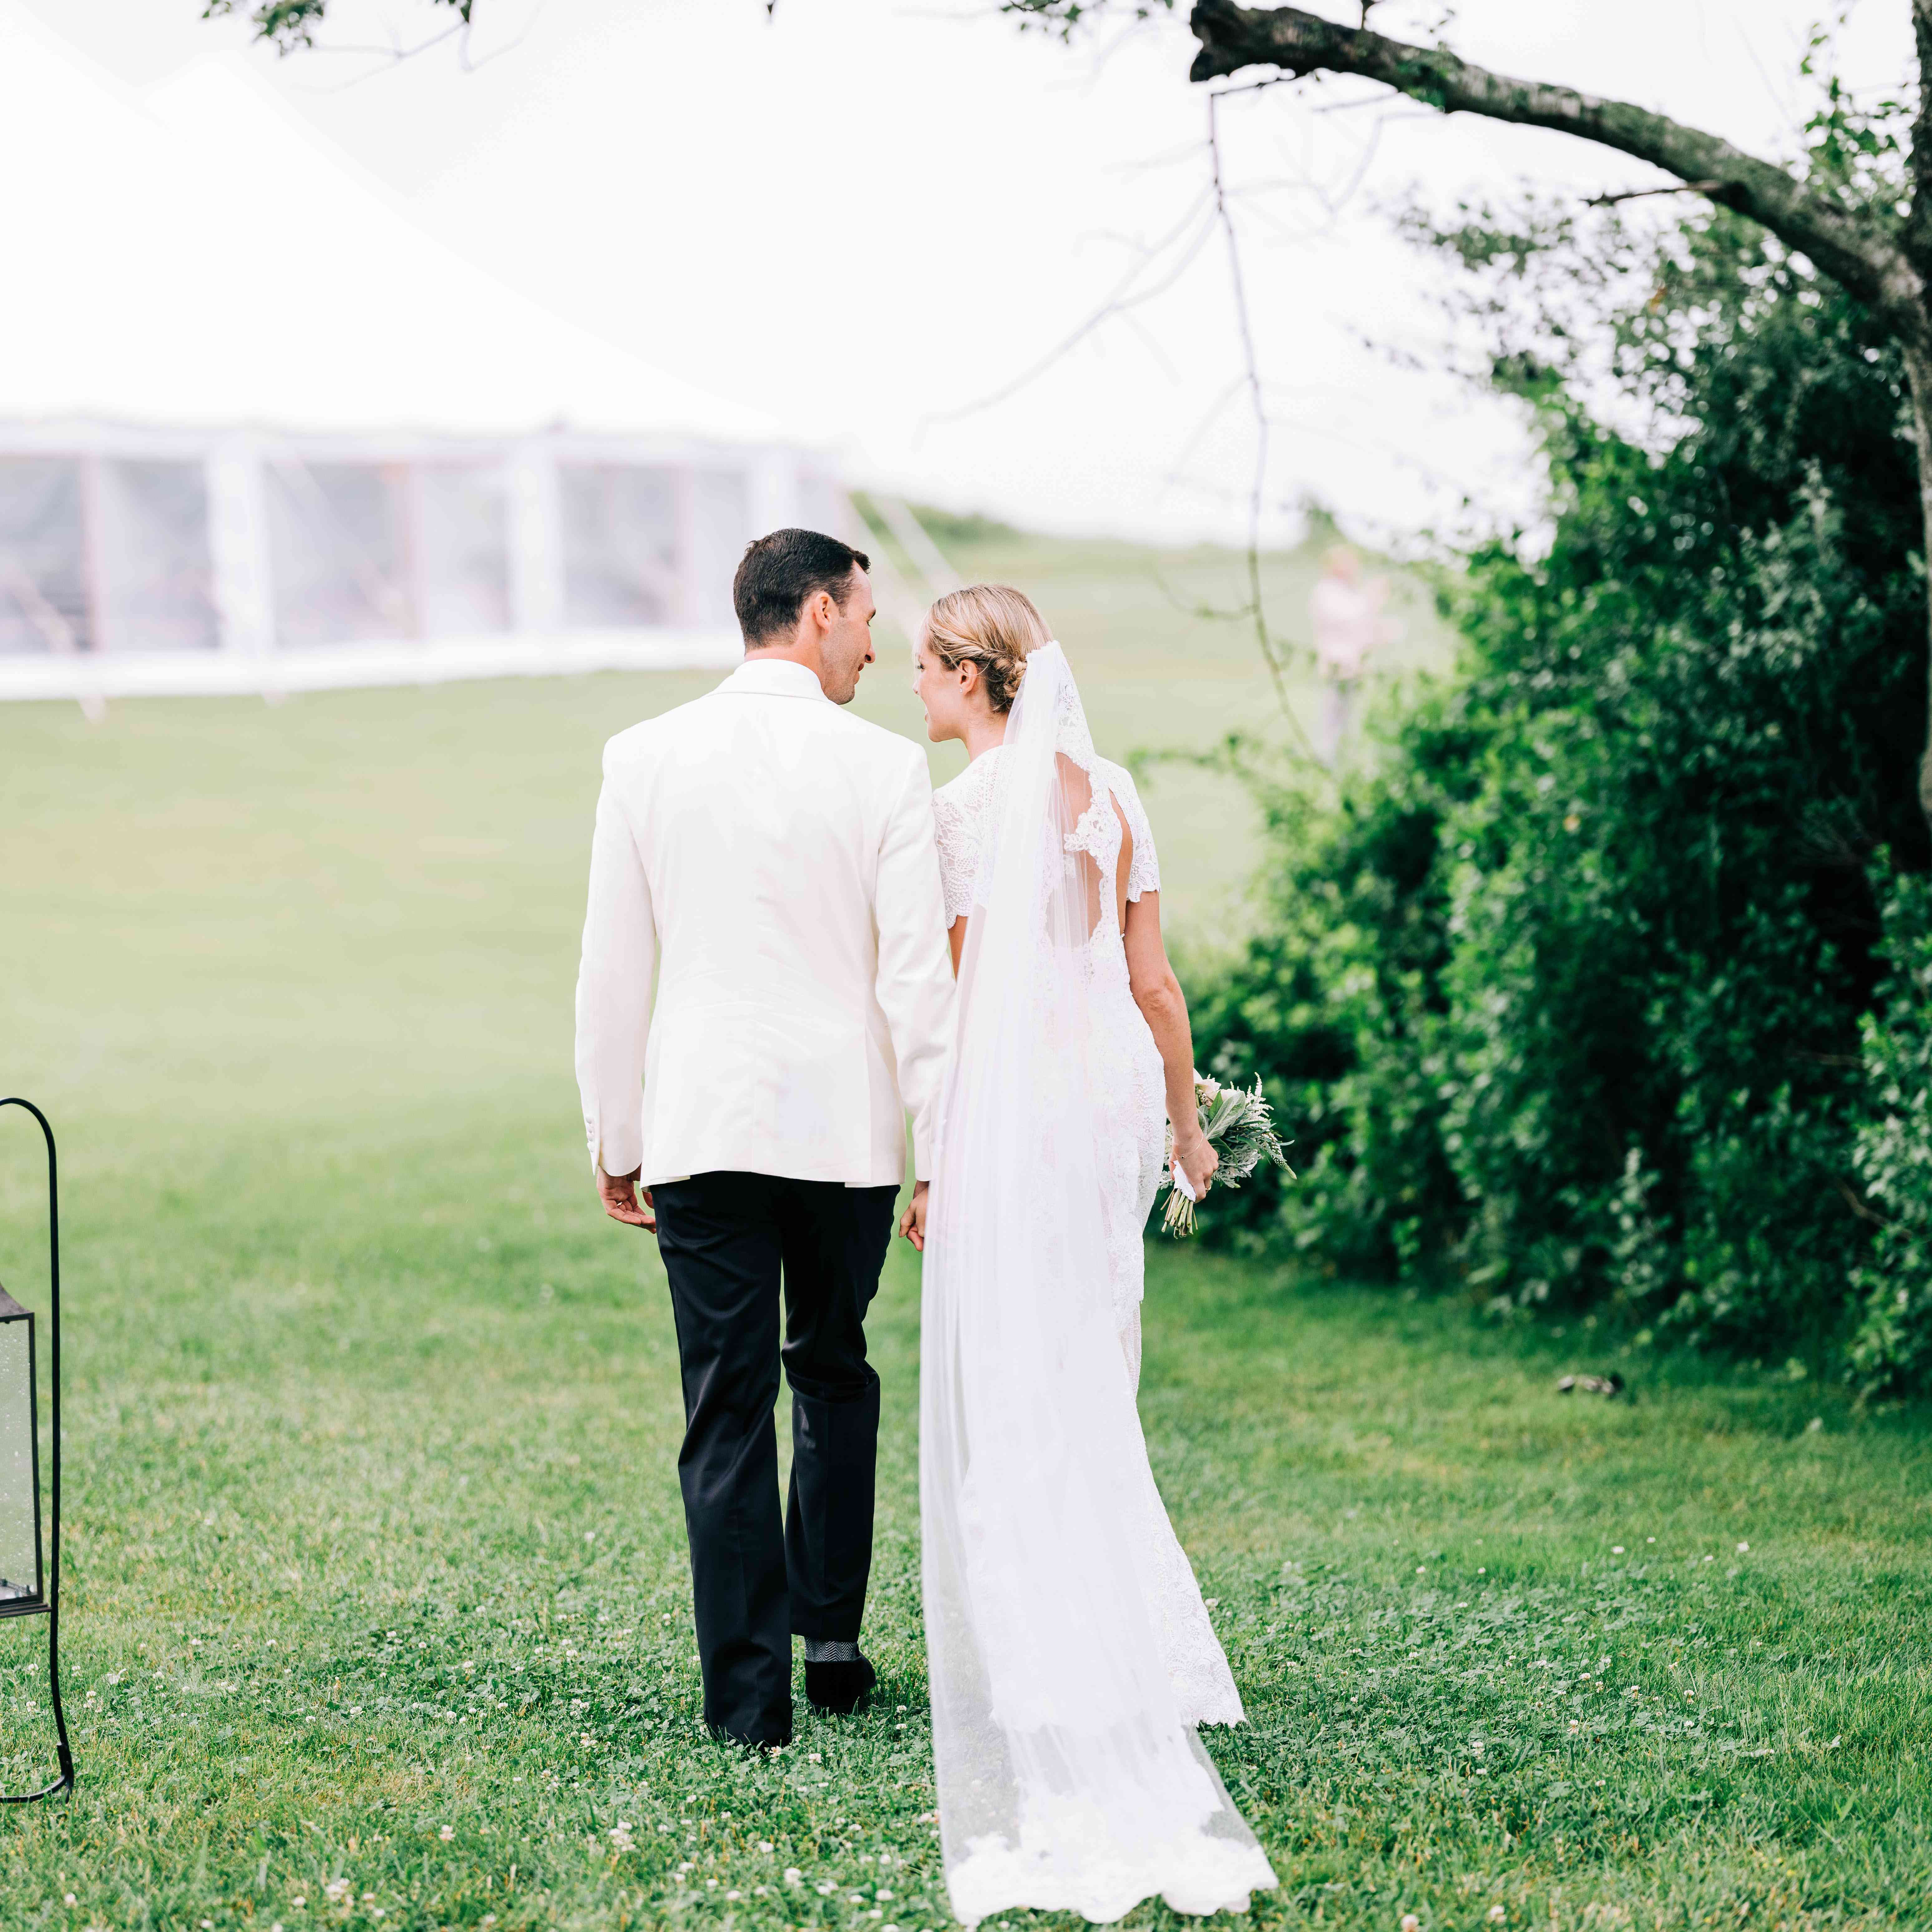 <p>bride and groom in bucolic setting</p><br><br>